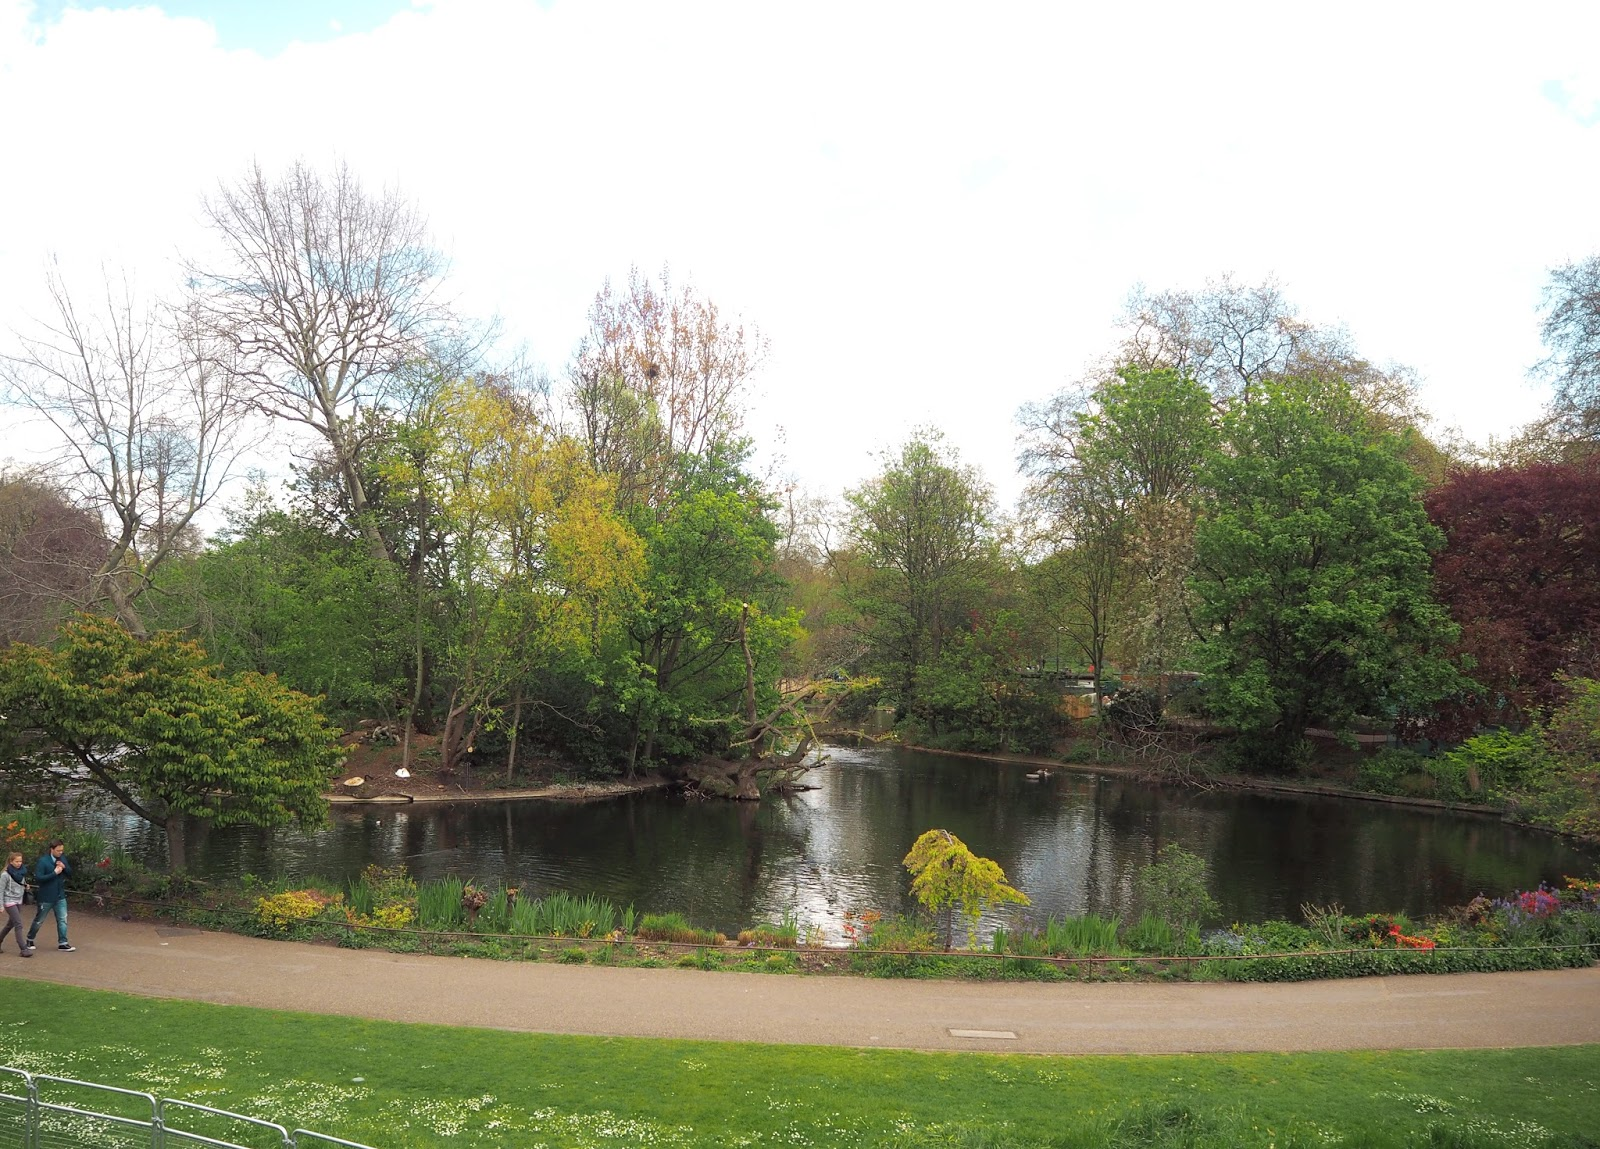 Postcards from London - St James Park